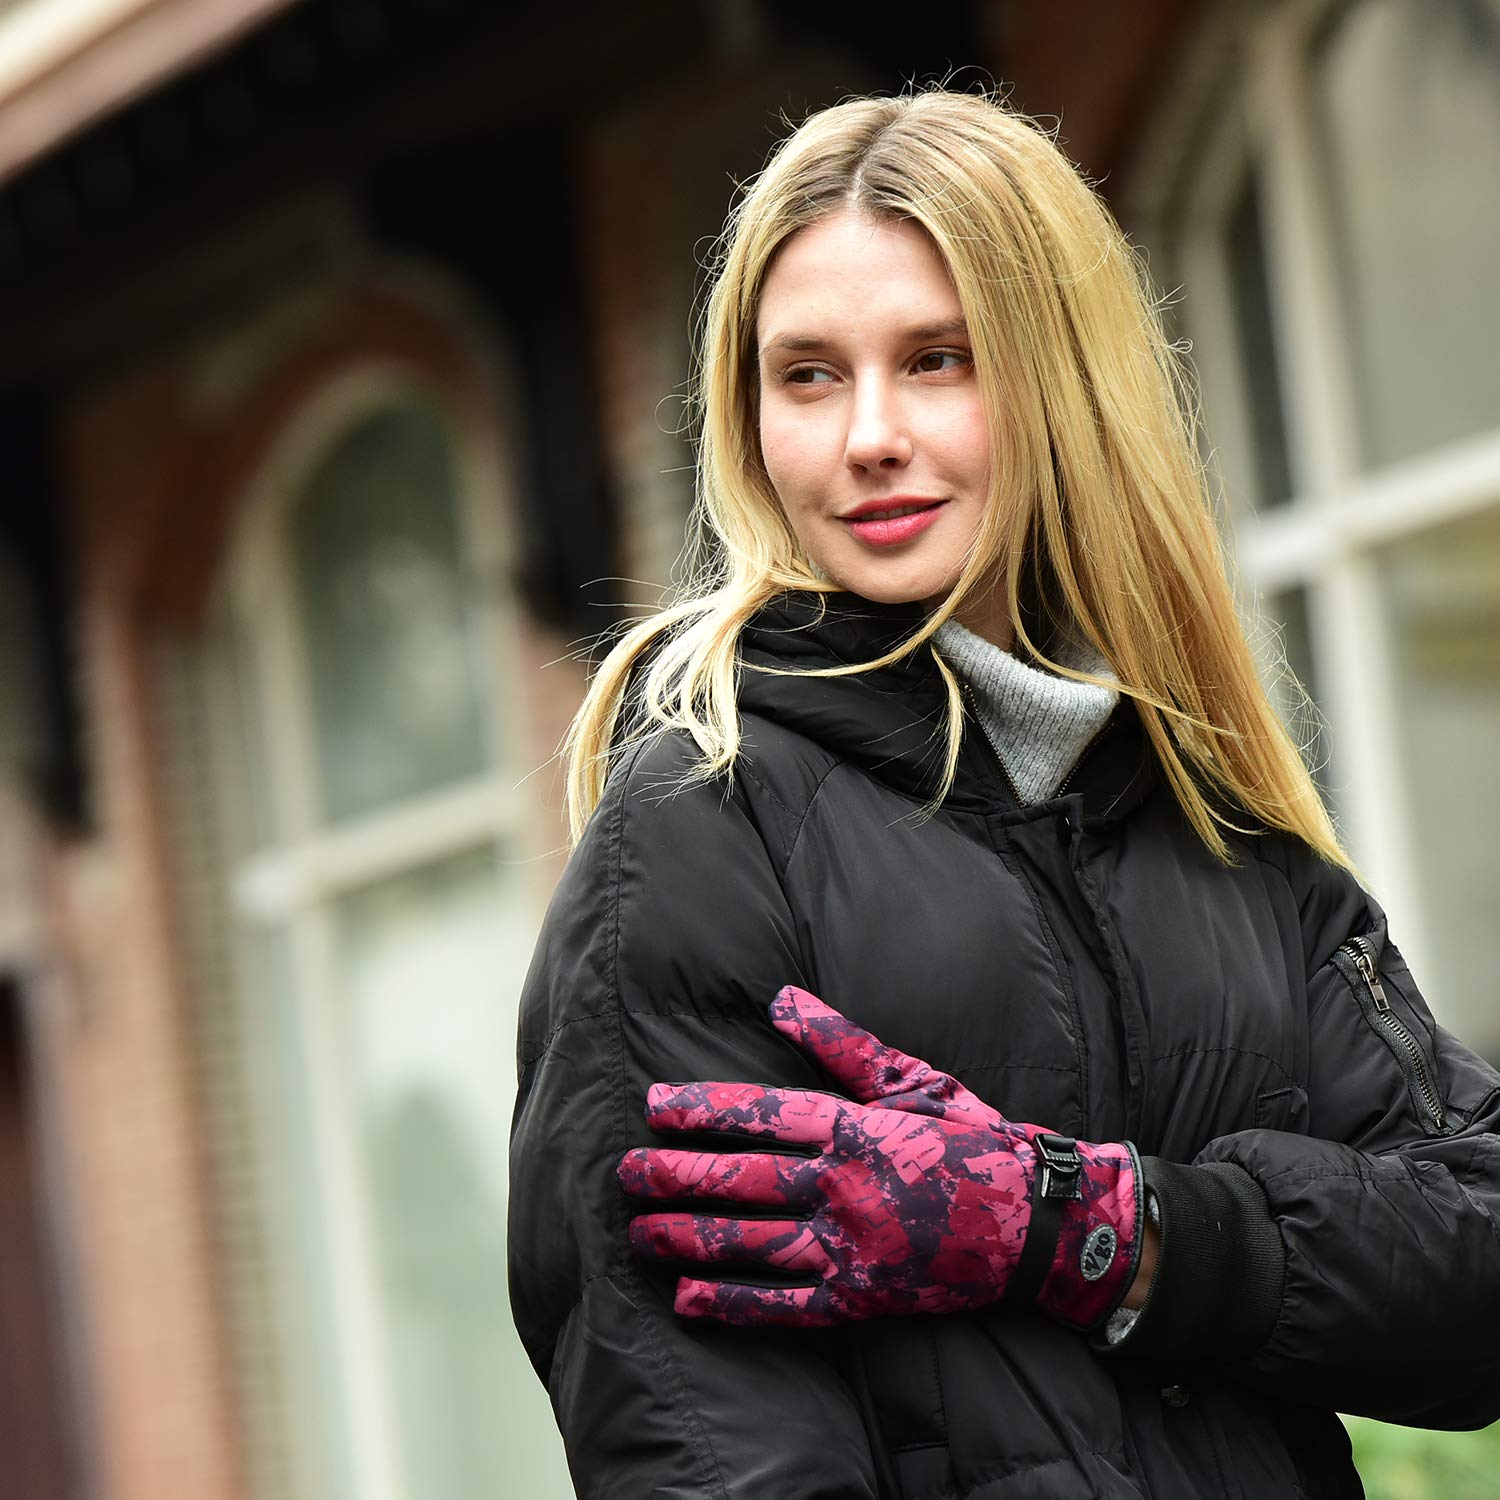 Vgo.. Driving/&Texting Ladies 0℃//32℉ or Above 3M Thinsulate C40 Lined Winter Outdoor Gloves Designed for Running Cycling 1Pair,Red/&Black,SL221FW-W